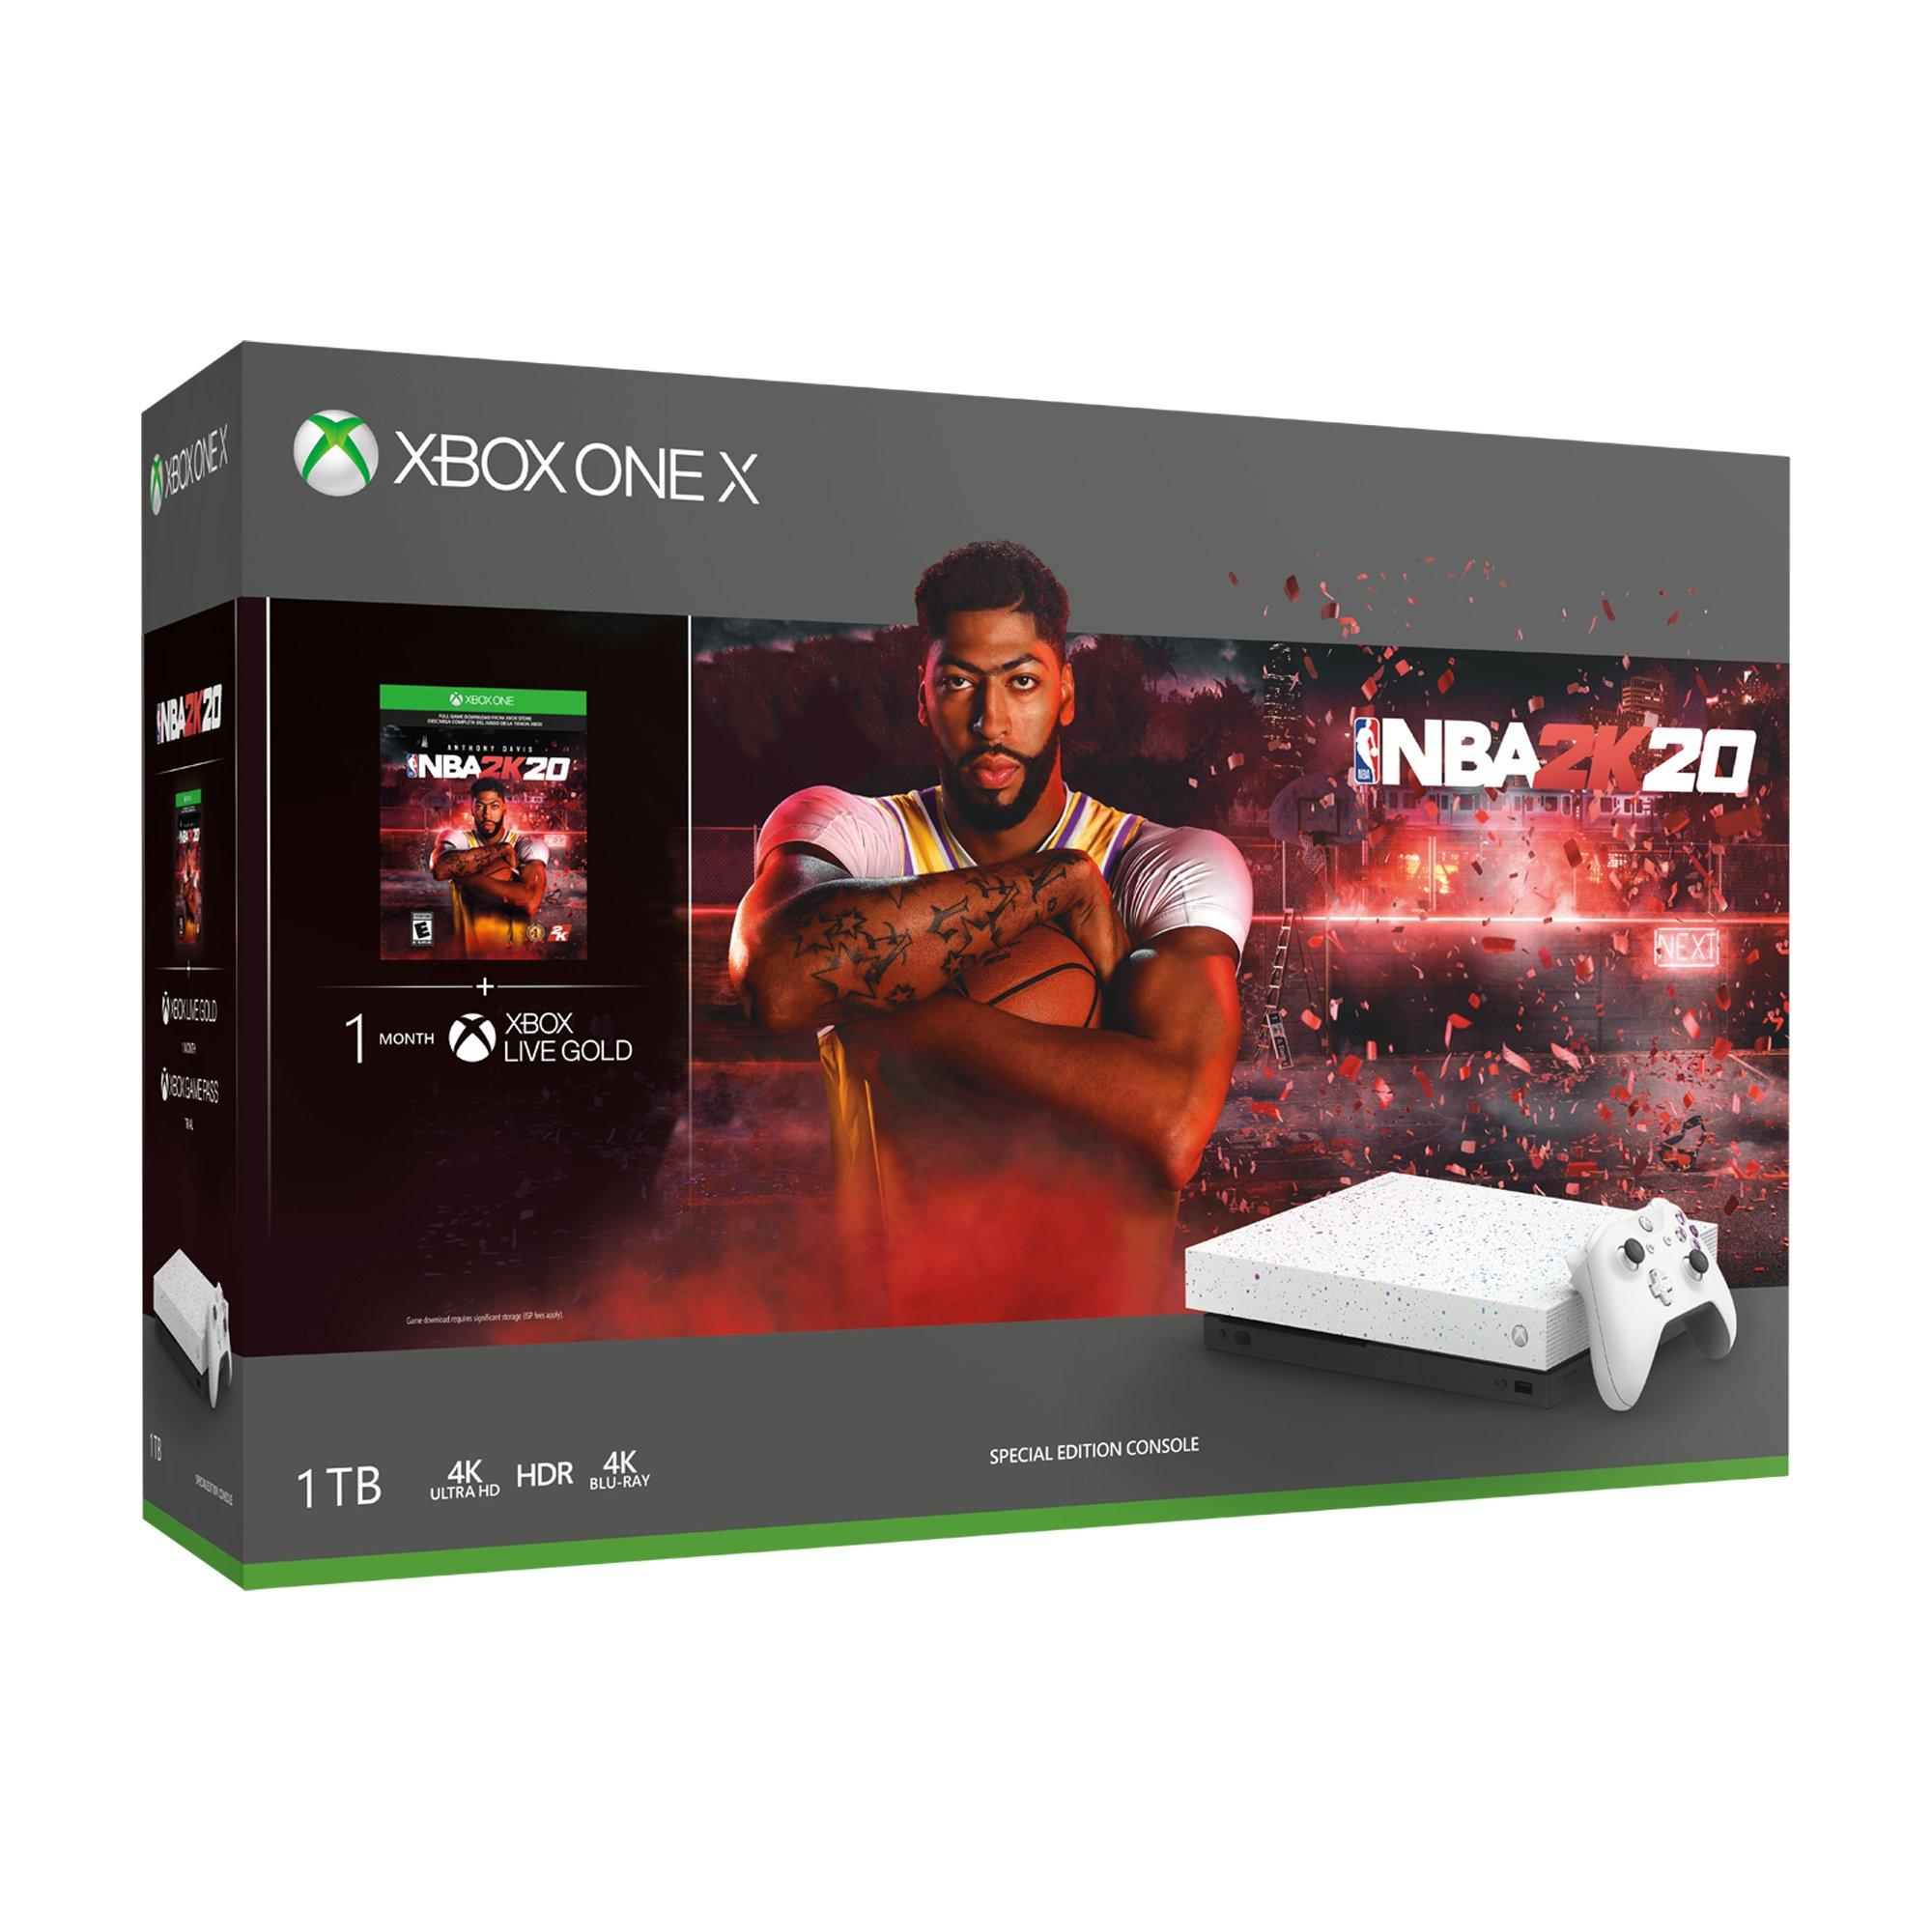 Xbox One X Nba 2k20 Special Edition 1tb Bundle Only At